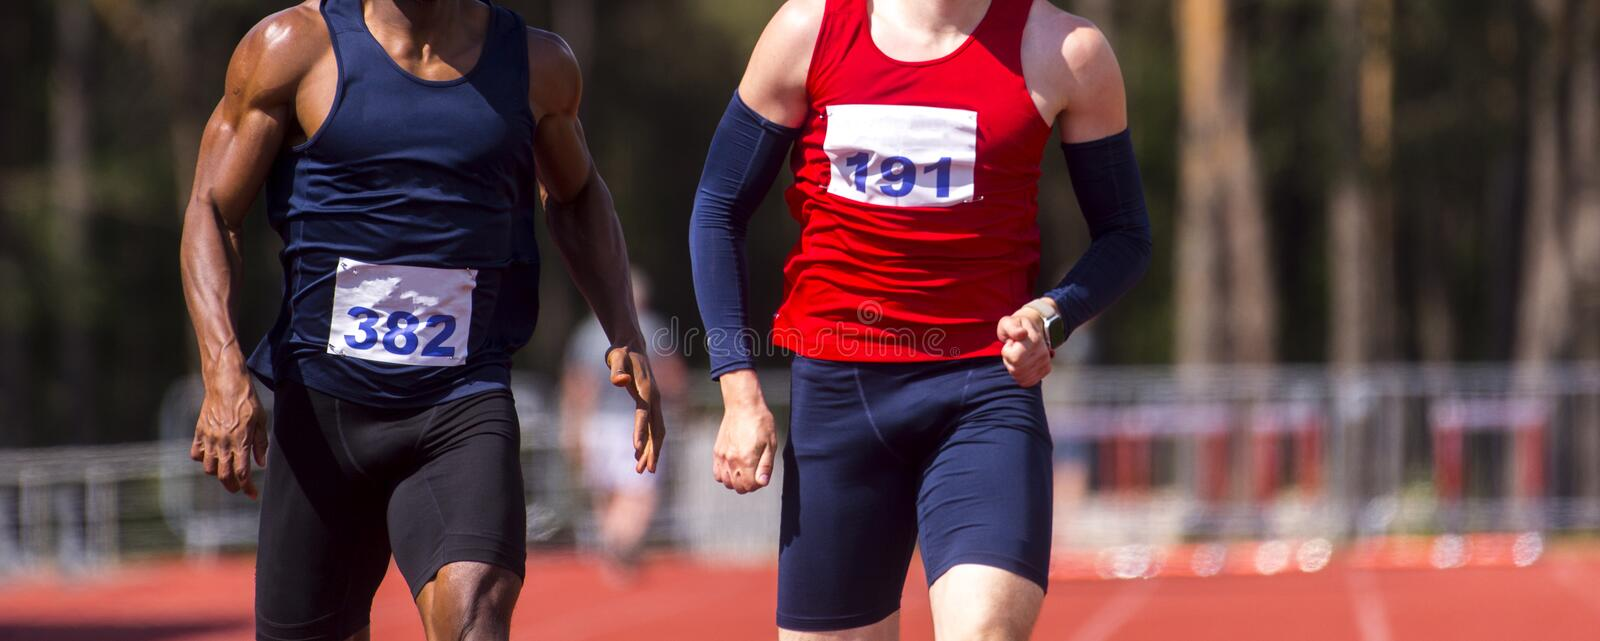 Male athletes sprinting. Two men in sport clothes run at the running track in professional stadium stock photography